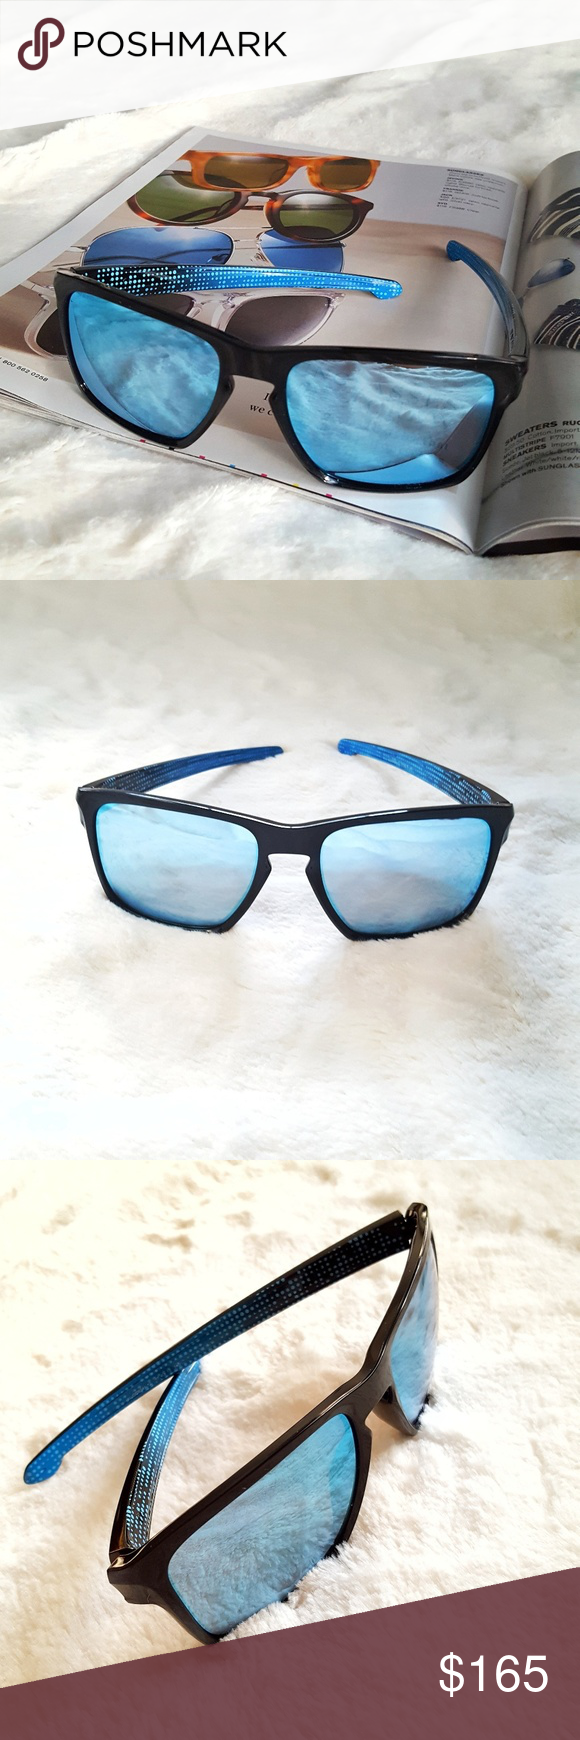 4404789822 OAKLEY SLIVER PRIZM DEEP WATER XL Comes new in a box. Sleek architecture  and sculptural